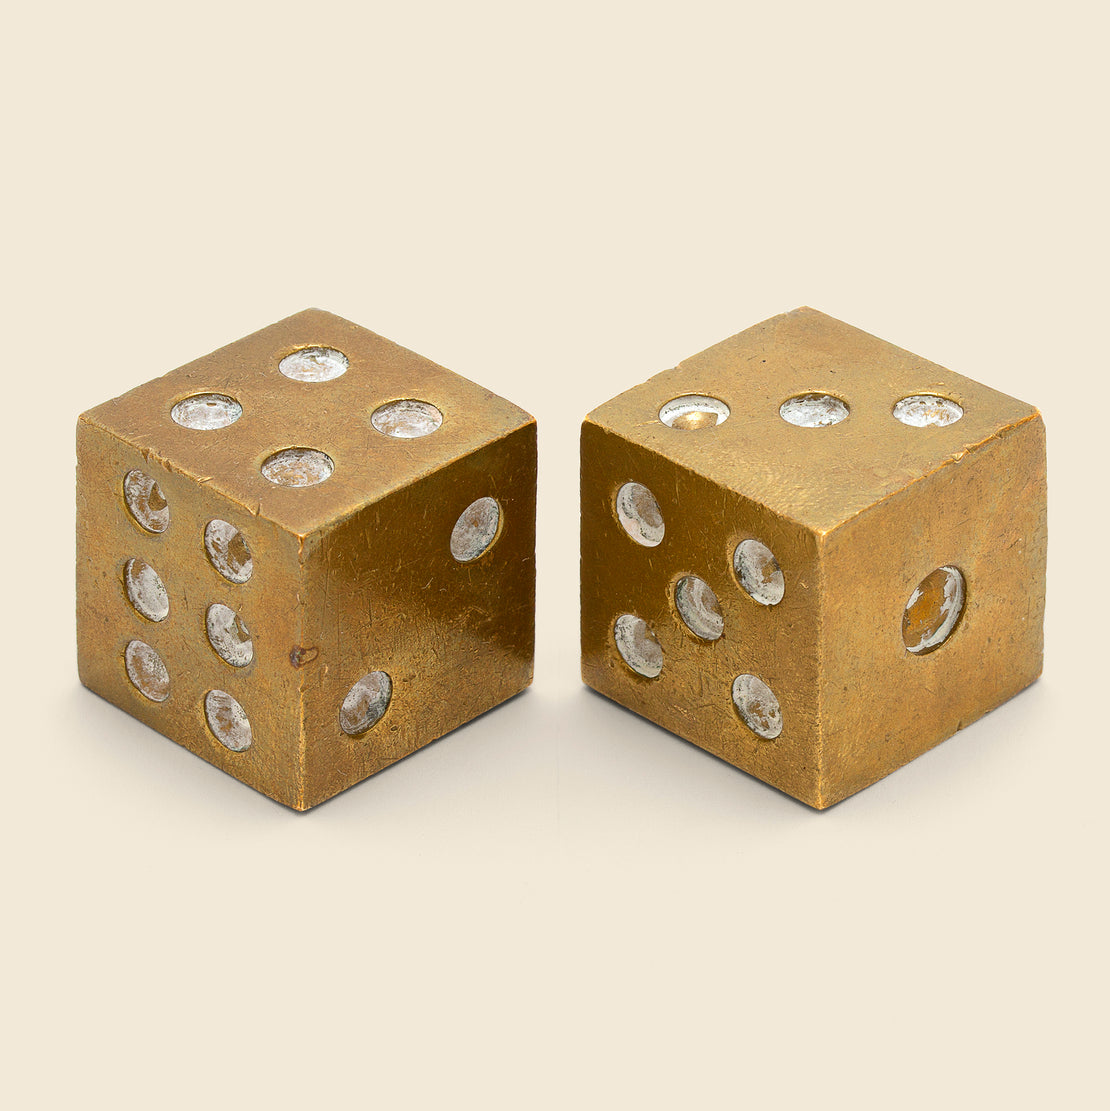 Vintage Set of Brass Dice - Brass/White